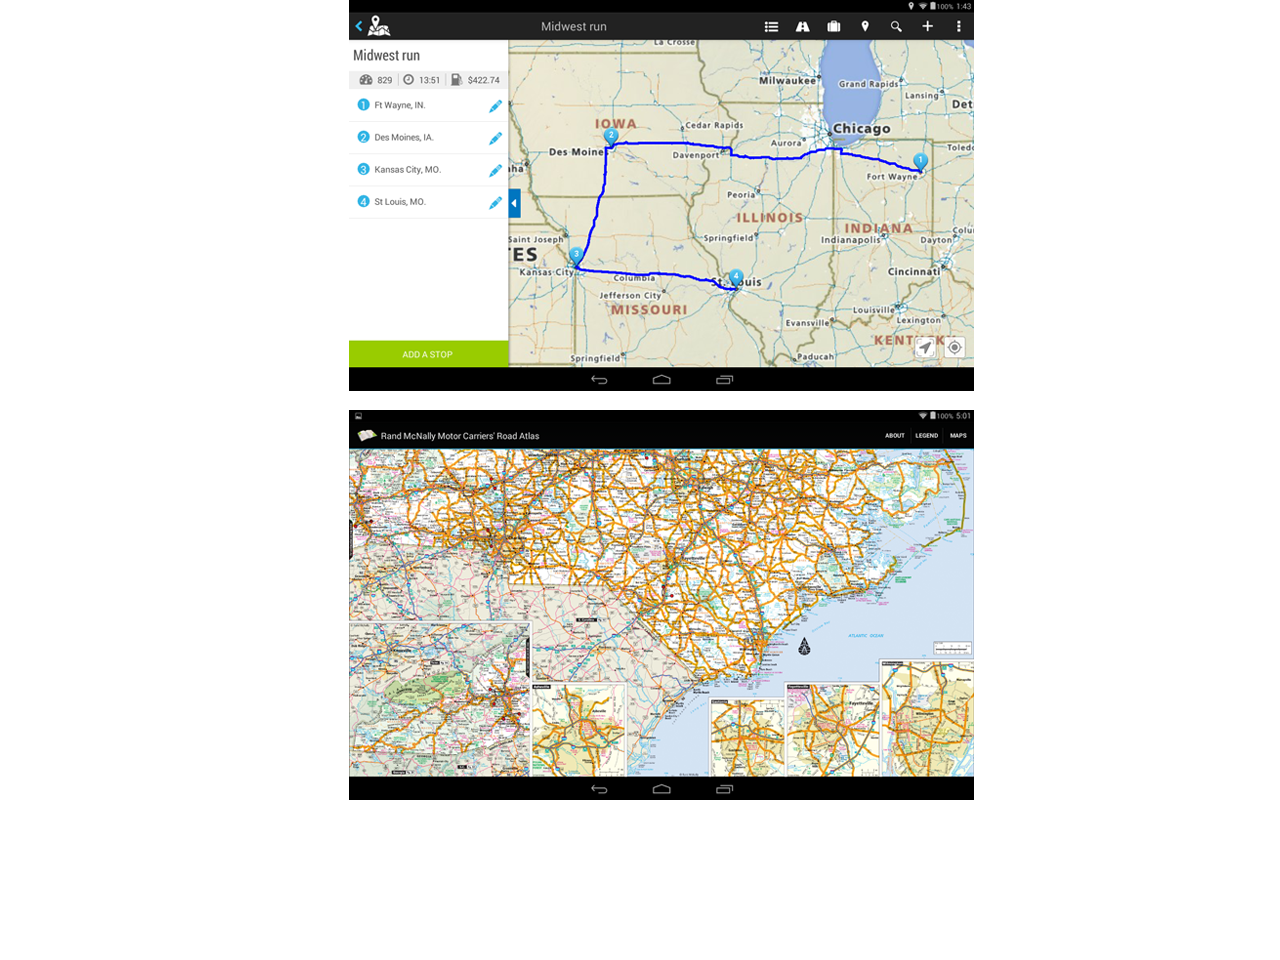 Rand mcnally tnd tablet truck gps tndt80b nice l k for Motor carriers road atlas download